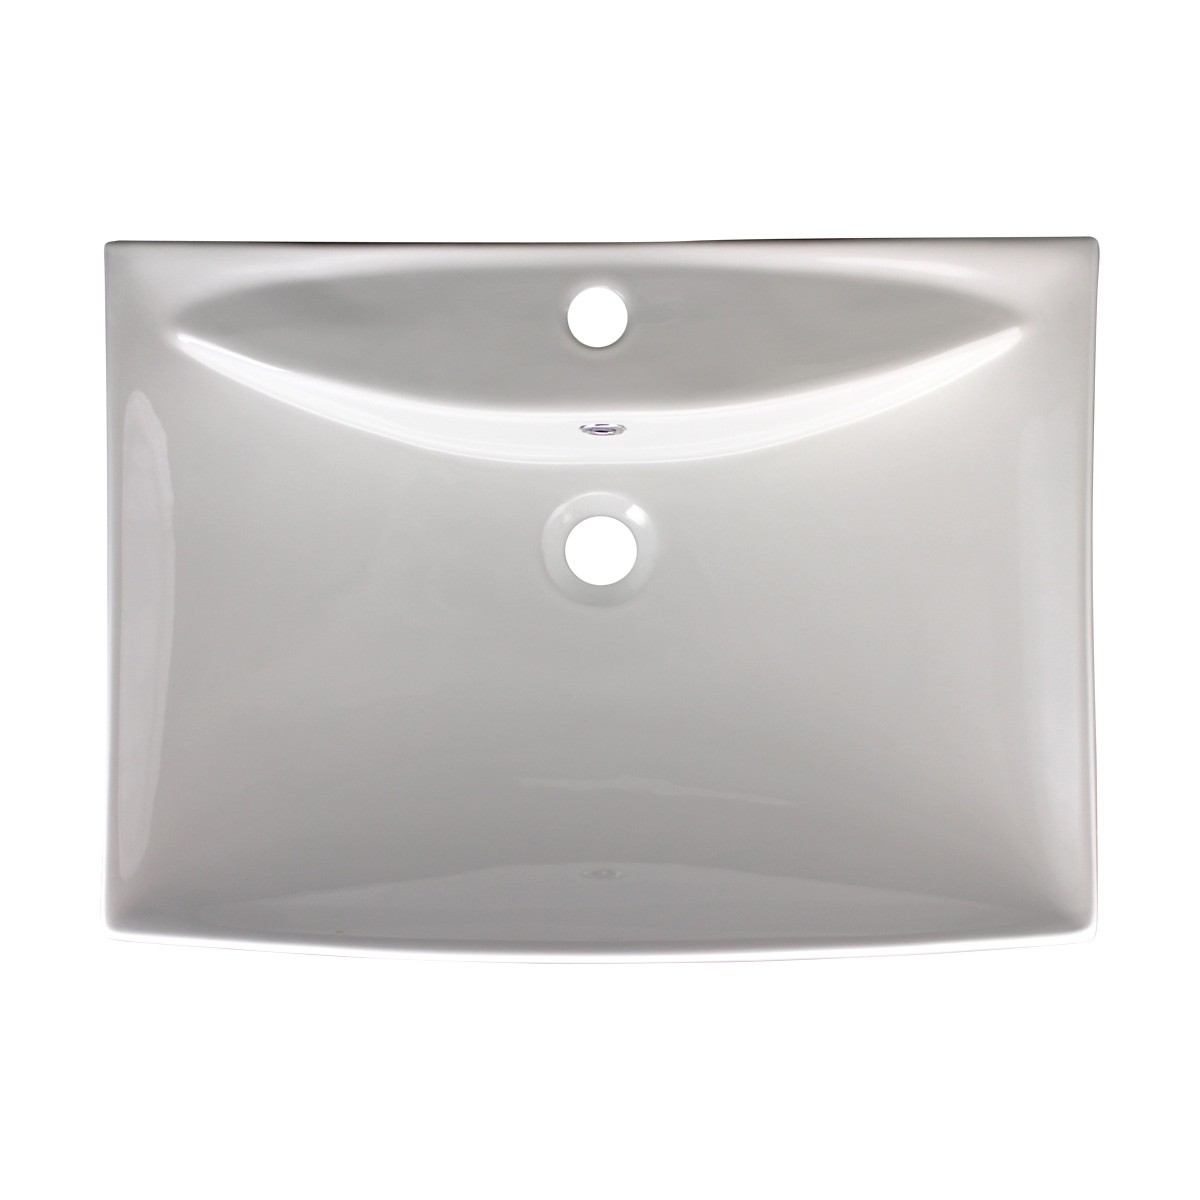 Bathroom Sink White Porcelain Deluxe Square classic traditional vintage antique authentic modern contemporary diy ceramic porcelain basin Above Counter Sink